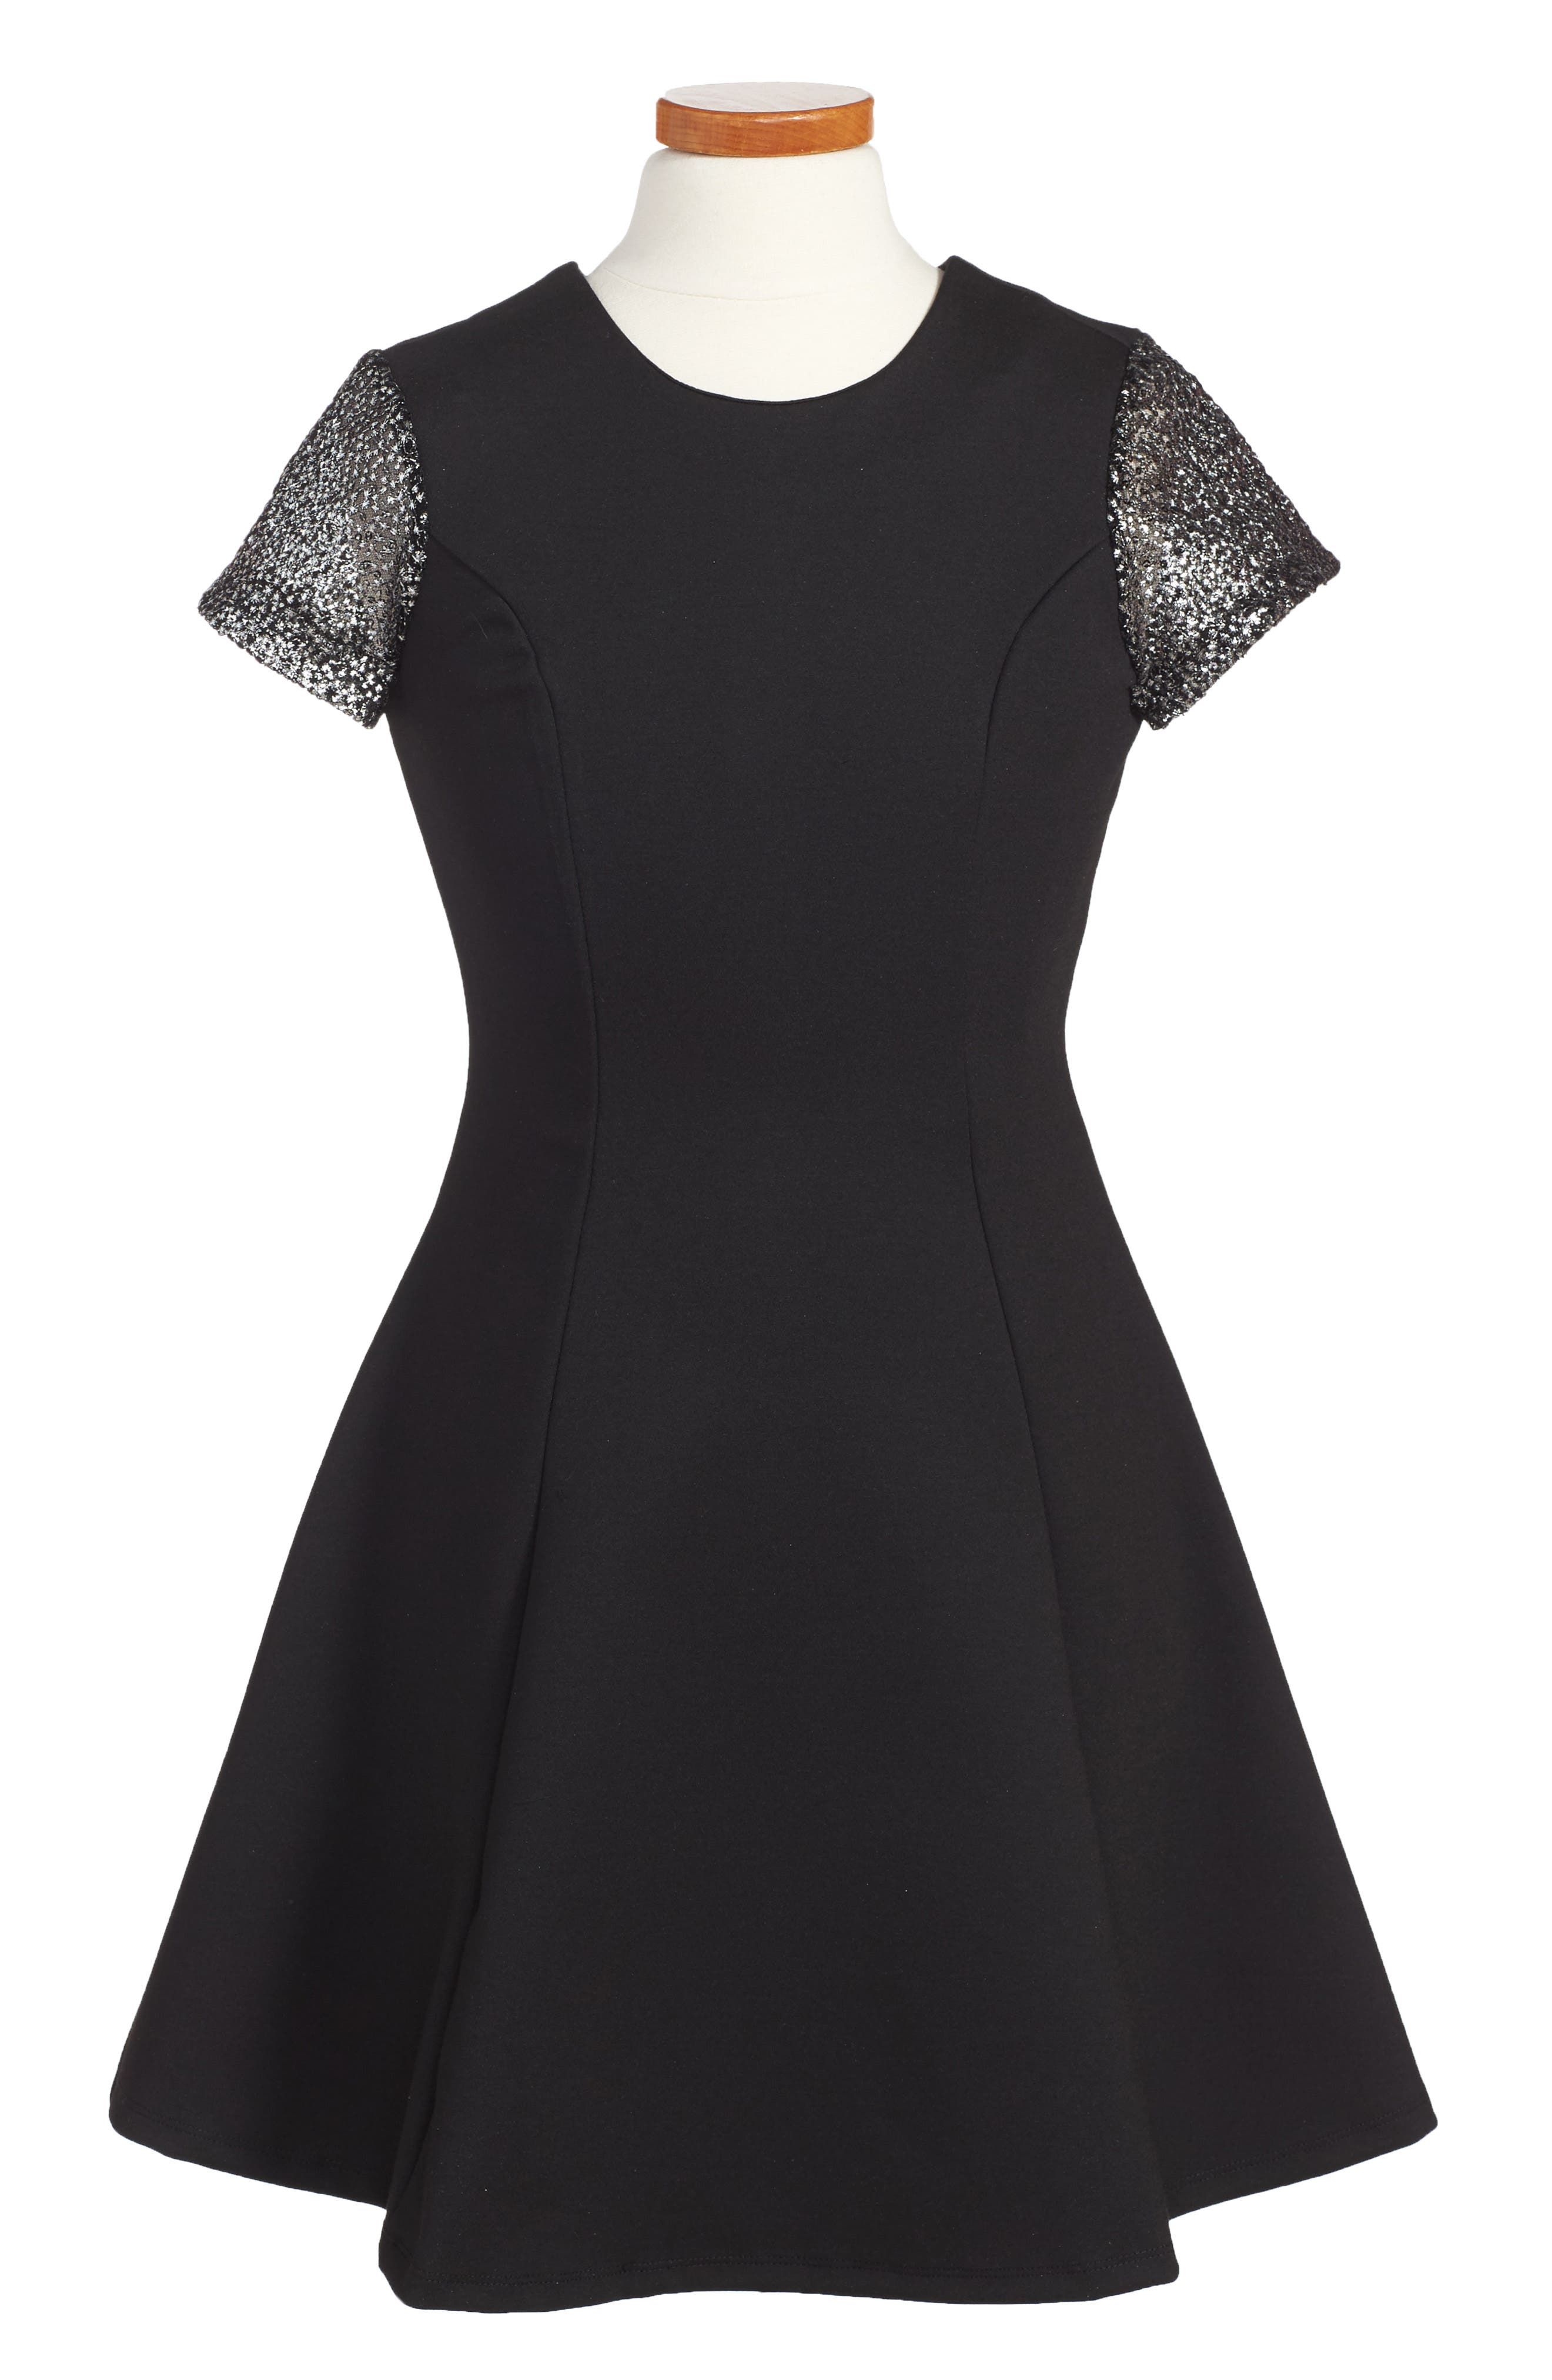 Penelope Tree Priscilla Dress (Big Girls)